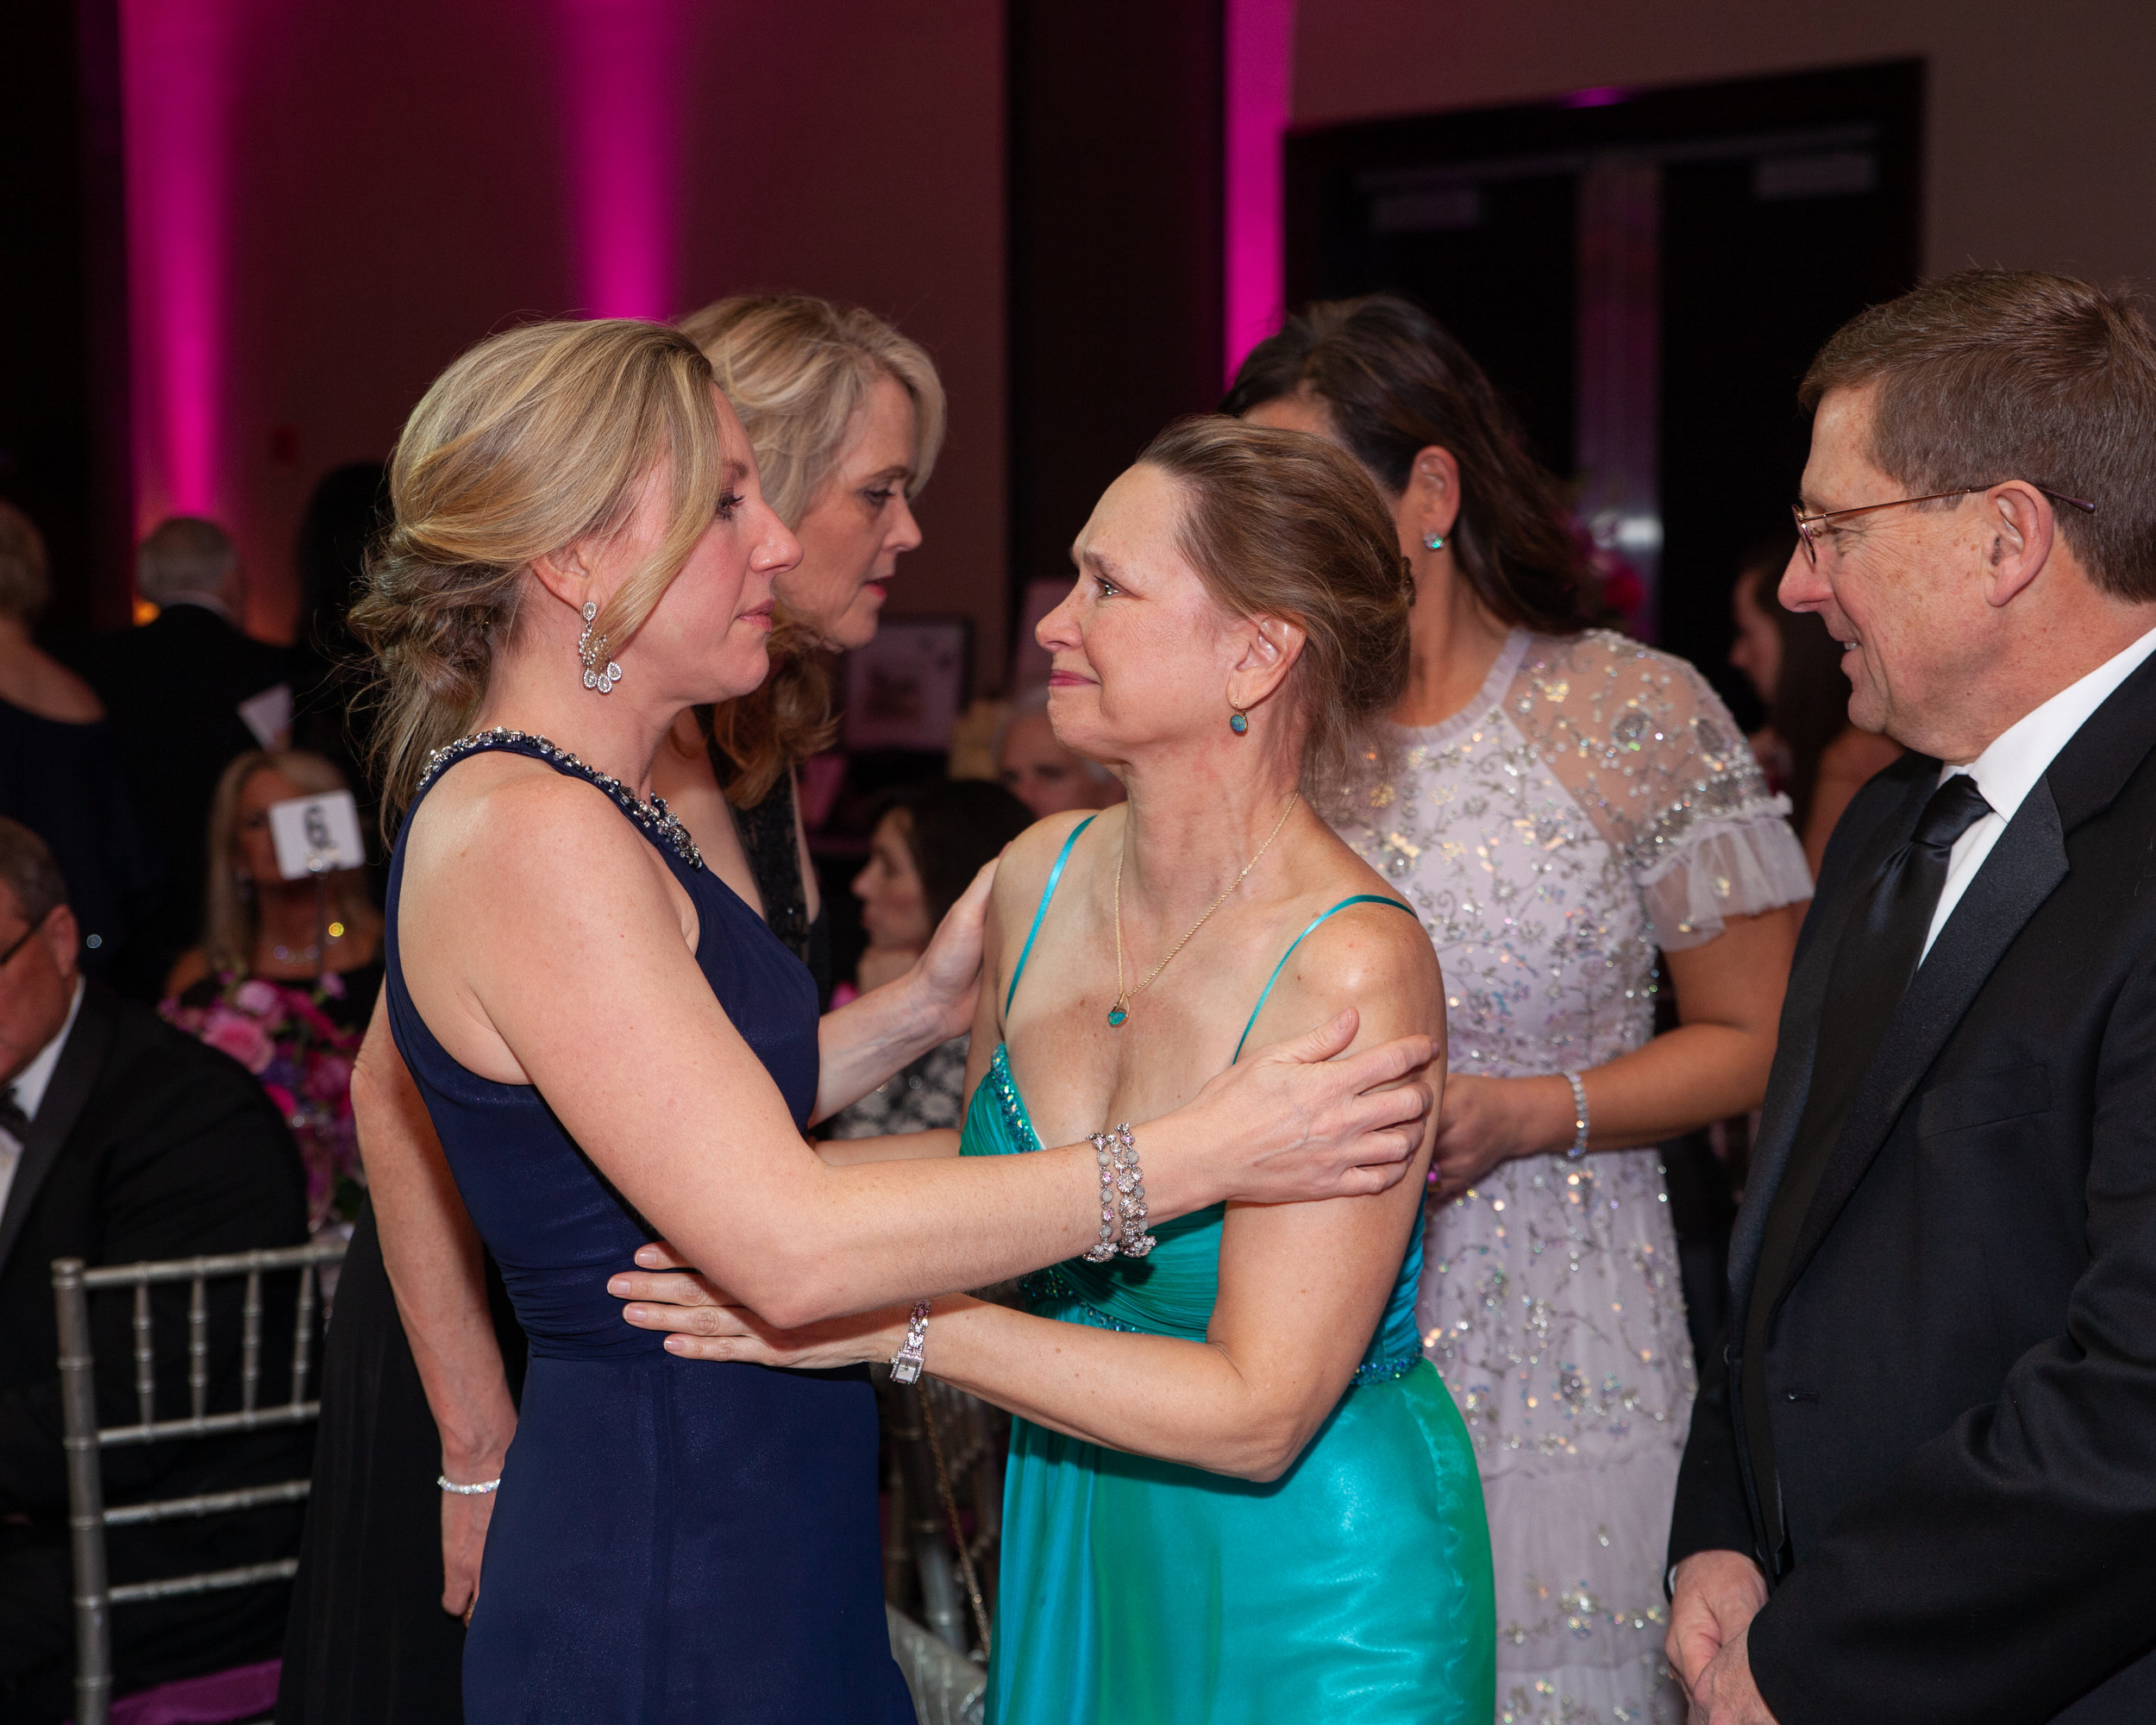 Bosom Buddies Charity Ball 2019 - I was asked to cover this incredible breast cancer awareness/treatment fundraiser by Bosom Buddies Charities. This was such a lively and heartwarming group of people!